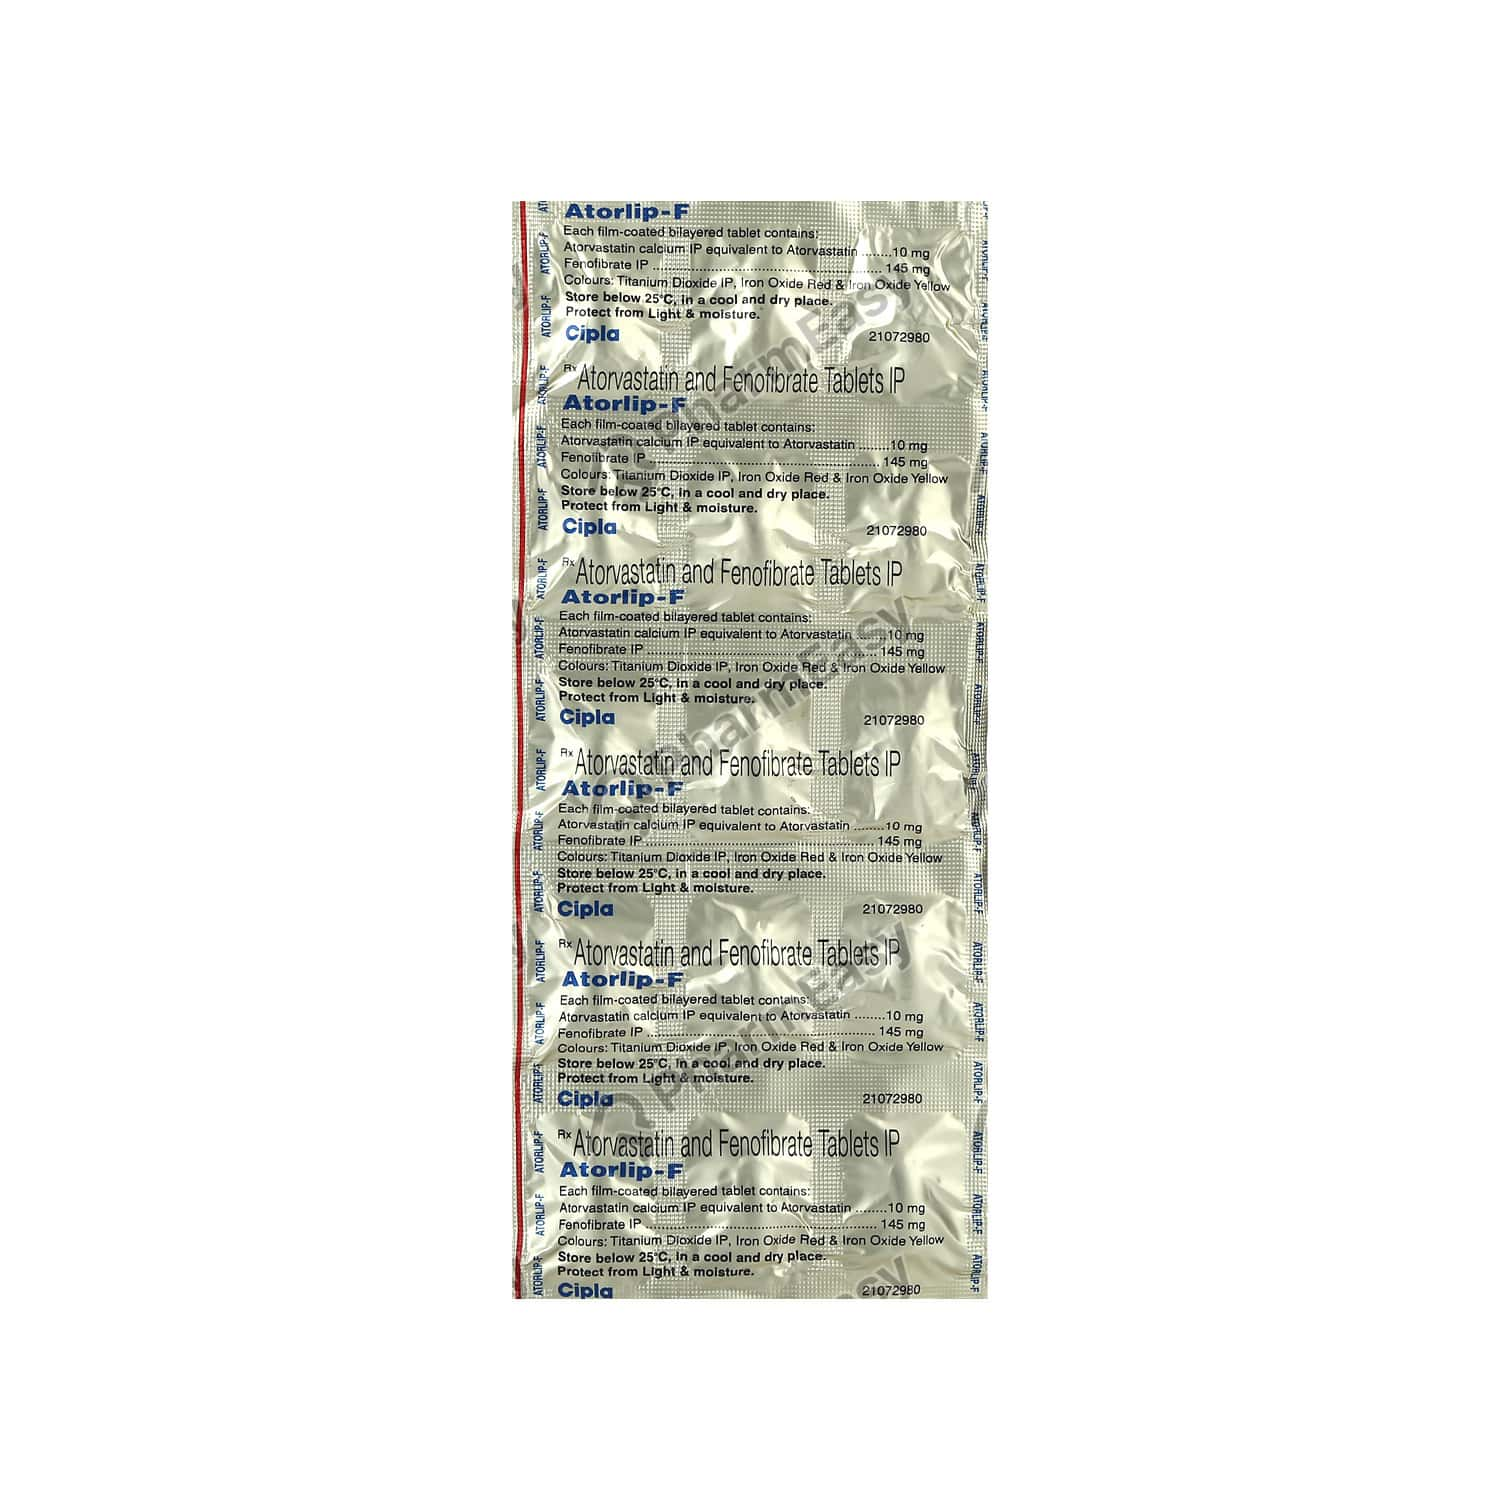 Atorlip F 10mg Strip Of 15 Tablets